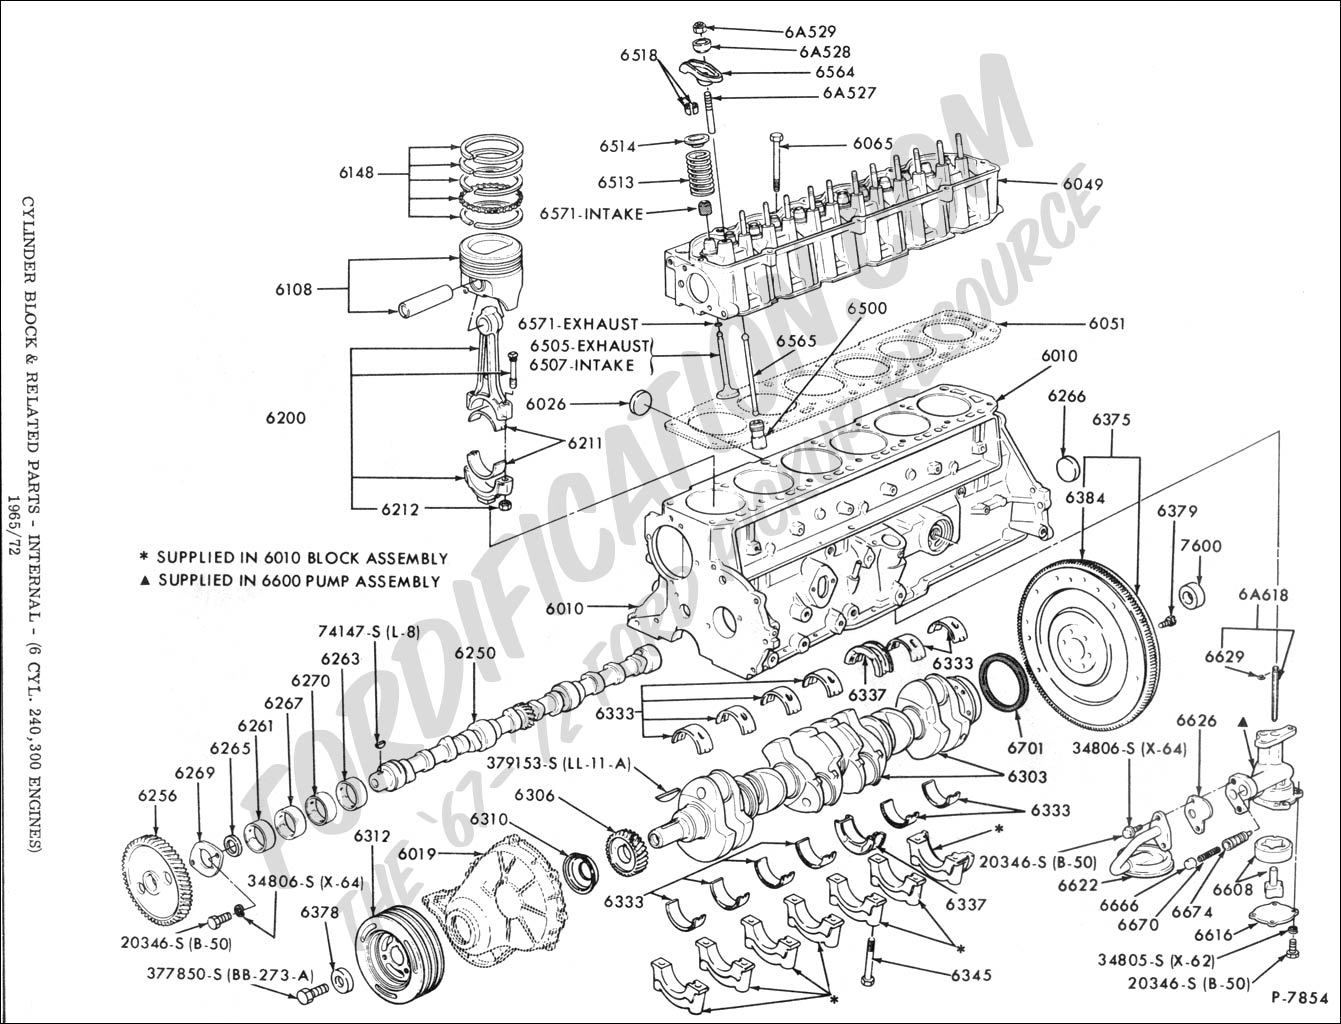 chevy 250 inline 6 engines wiring diagram get free image about wiring diagram